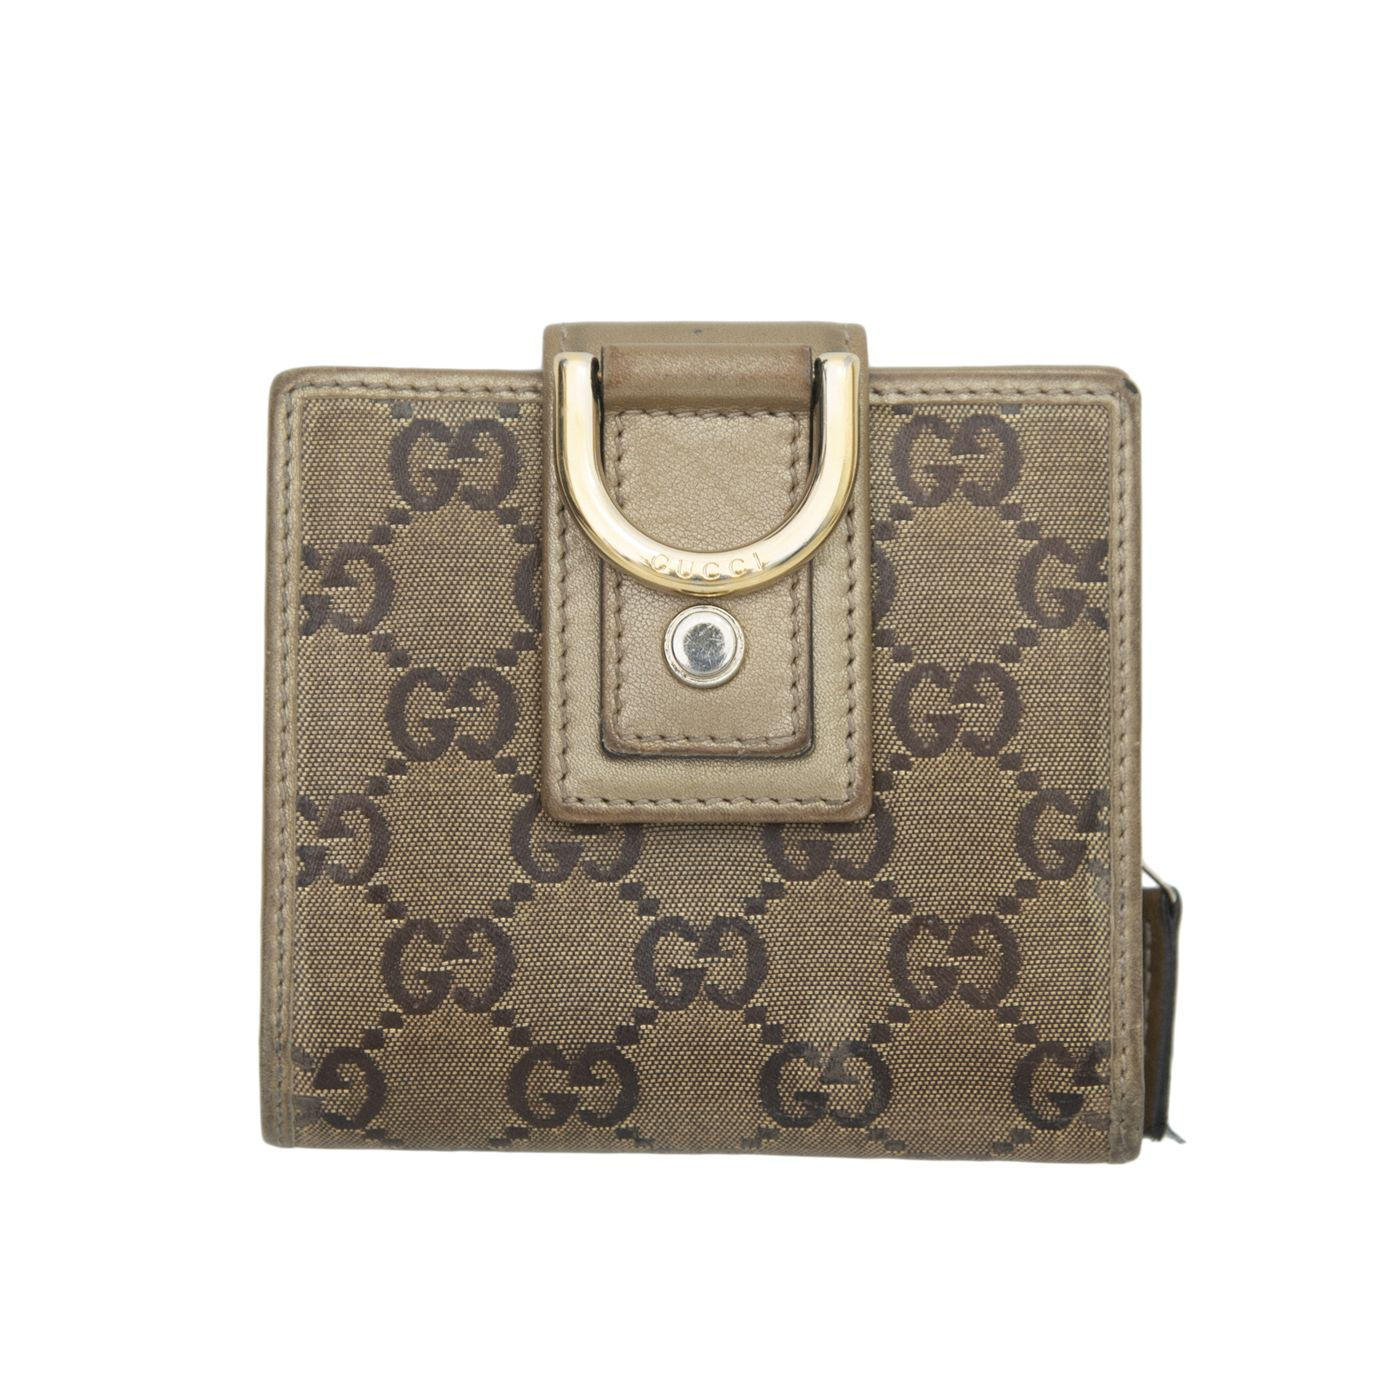 Gucci Gold GG Crystal D Ring Compact Wallet